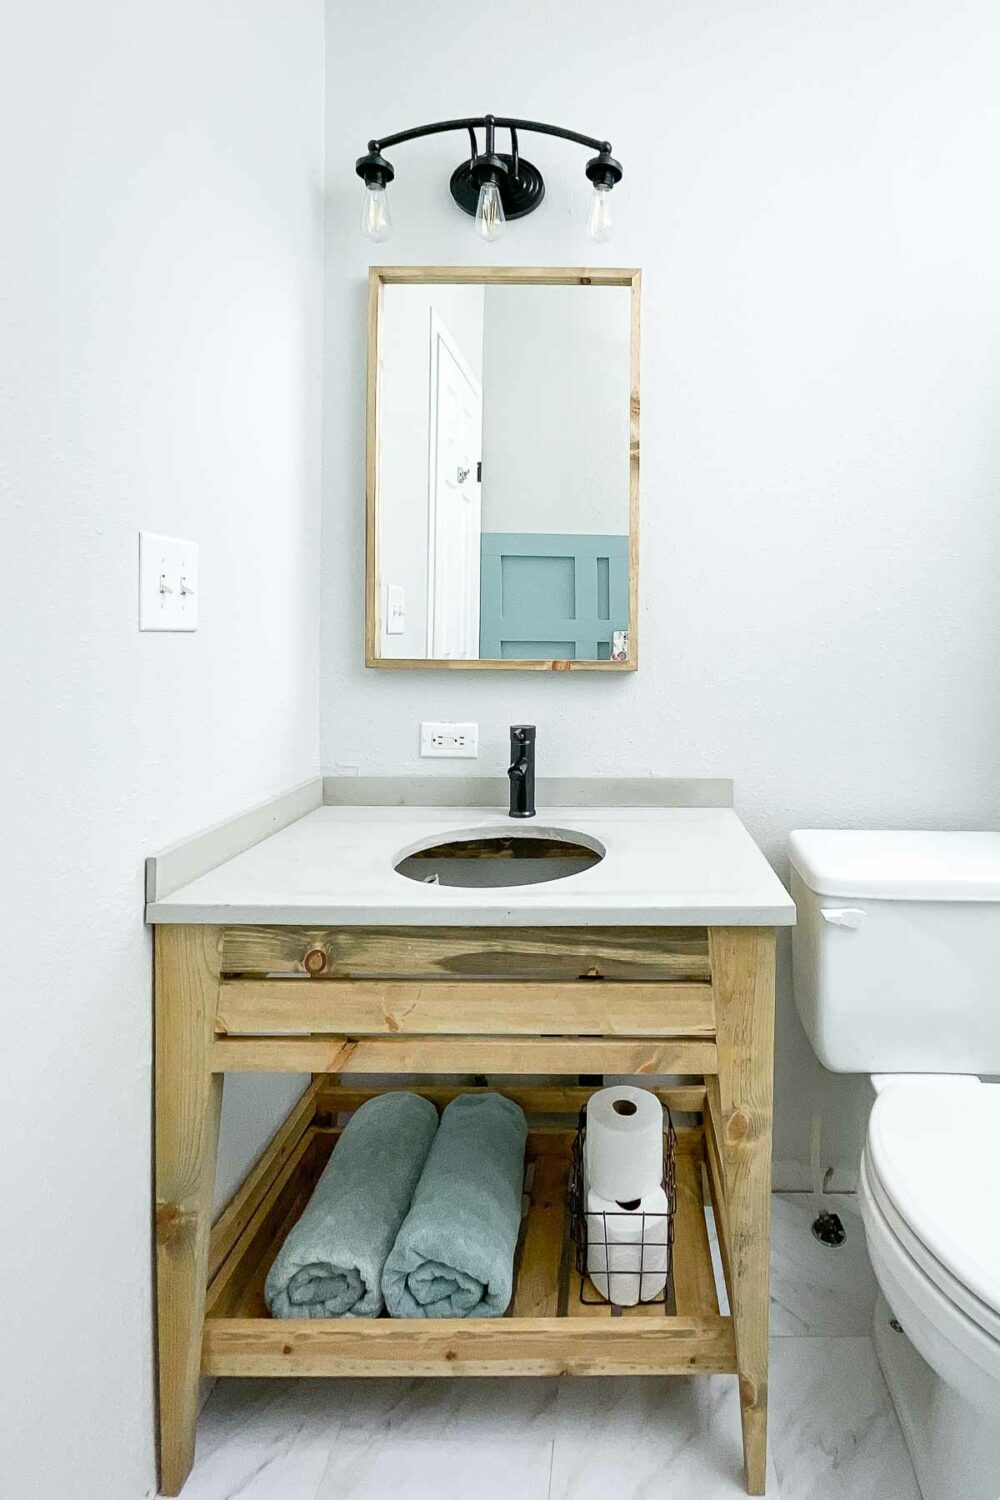 Bathroom remodeled for $119 with a new vanity, floor, paint and more.